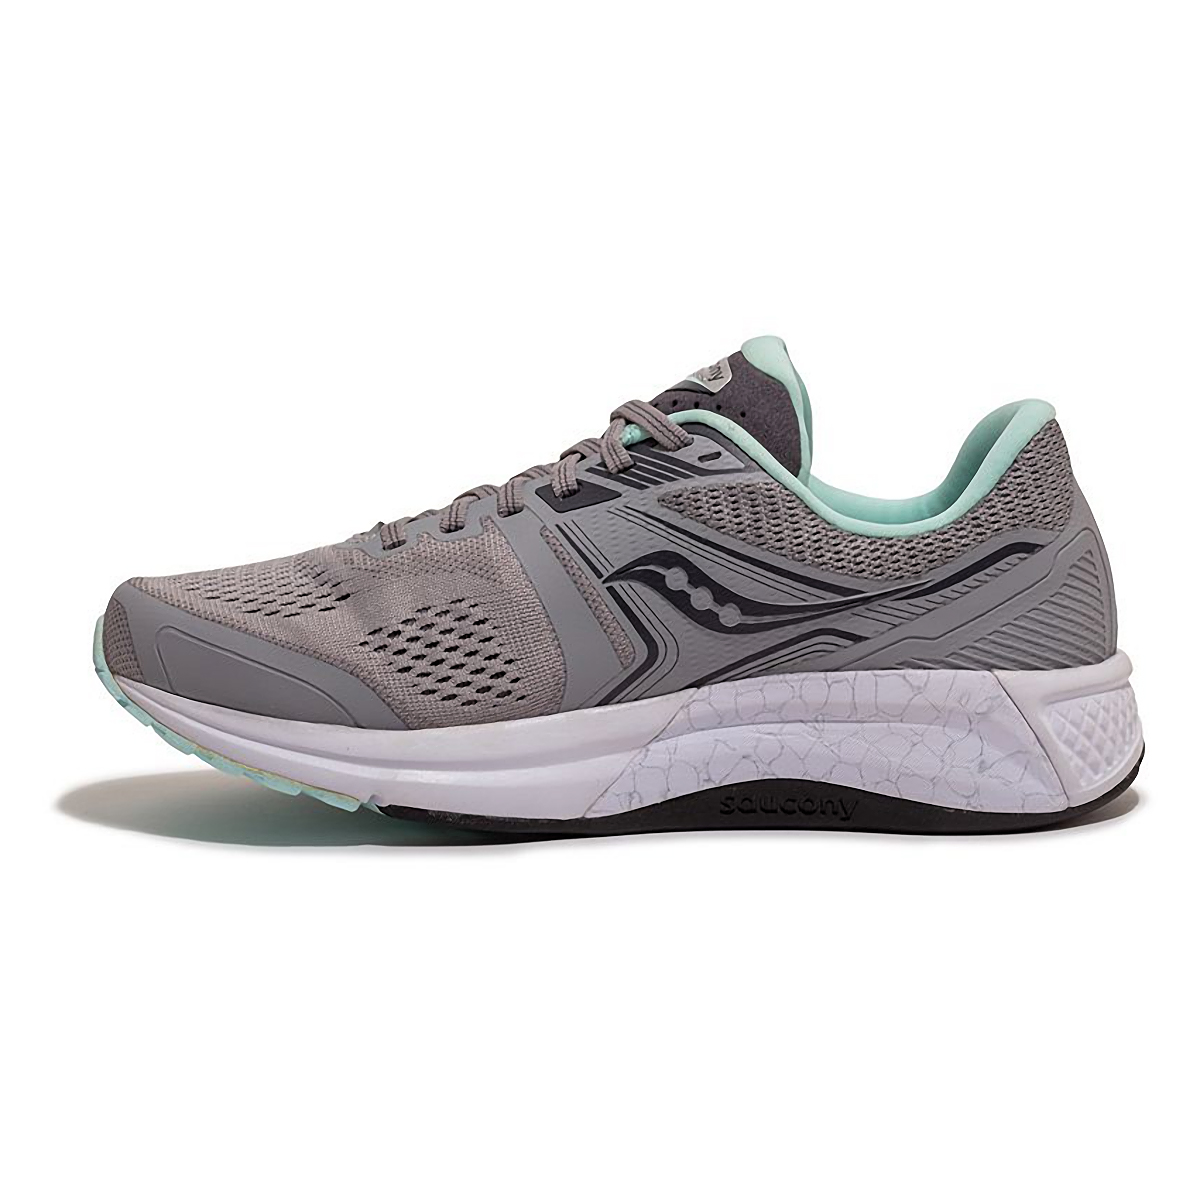 Women's Saucony Omni 19 Running Shoe, , large, image 2